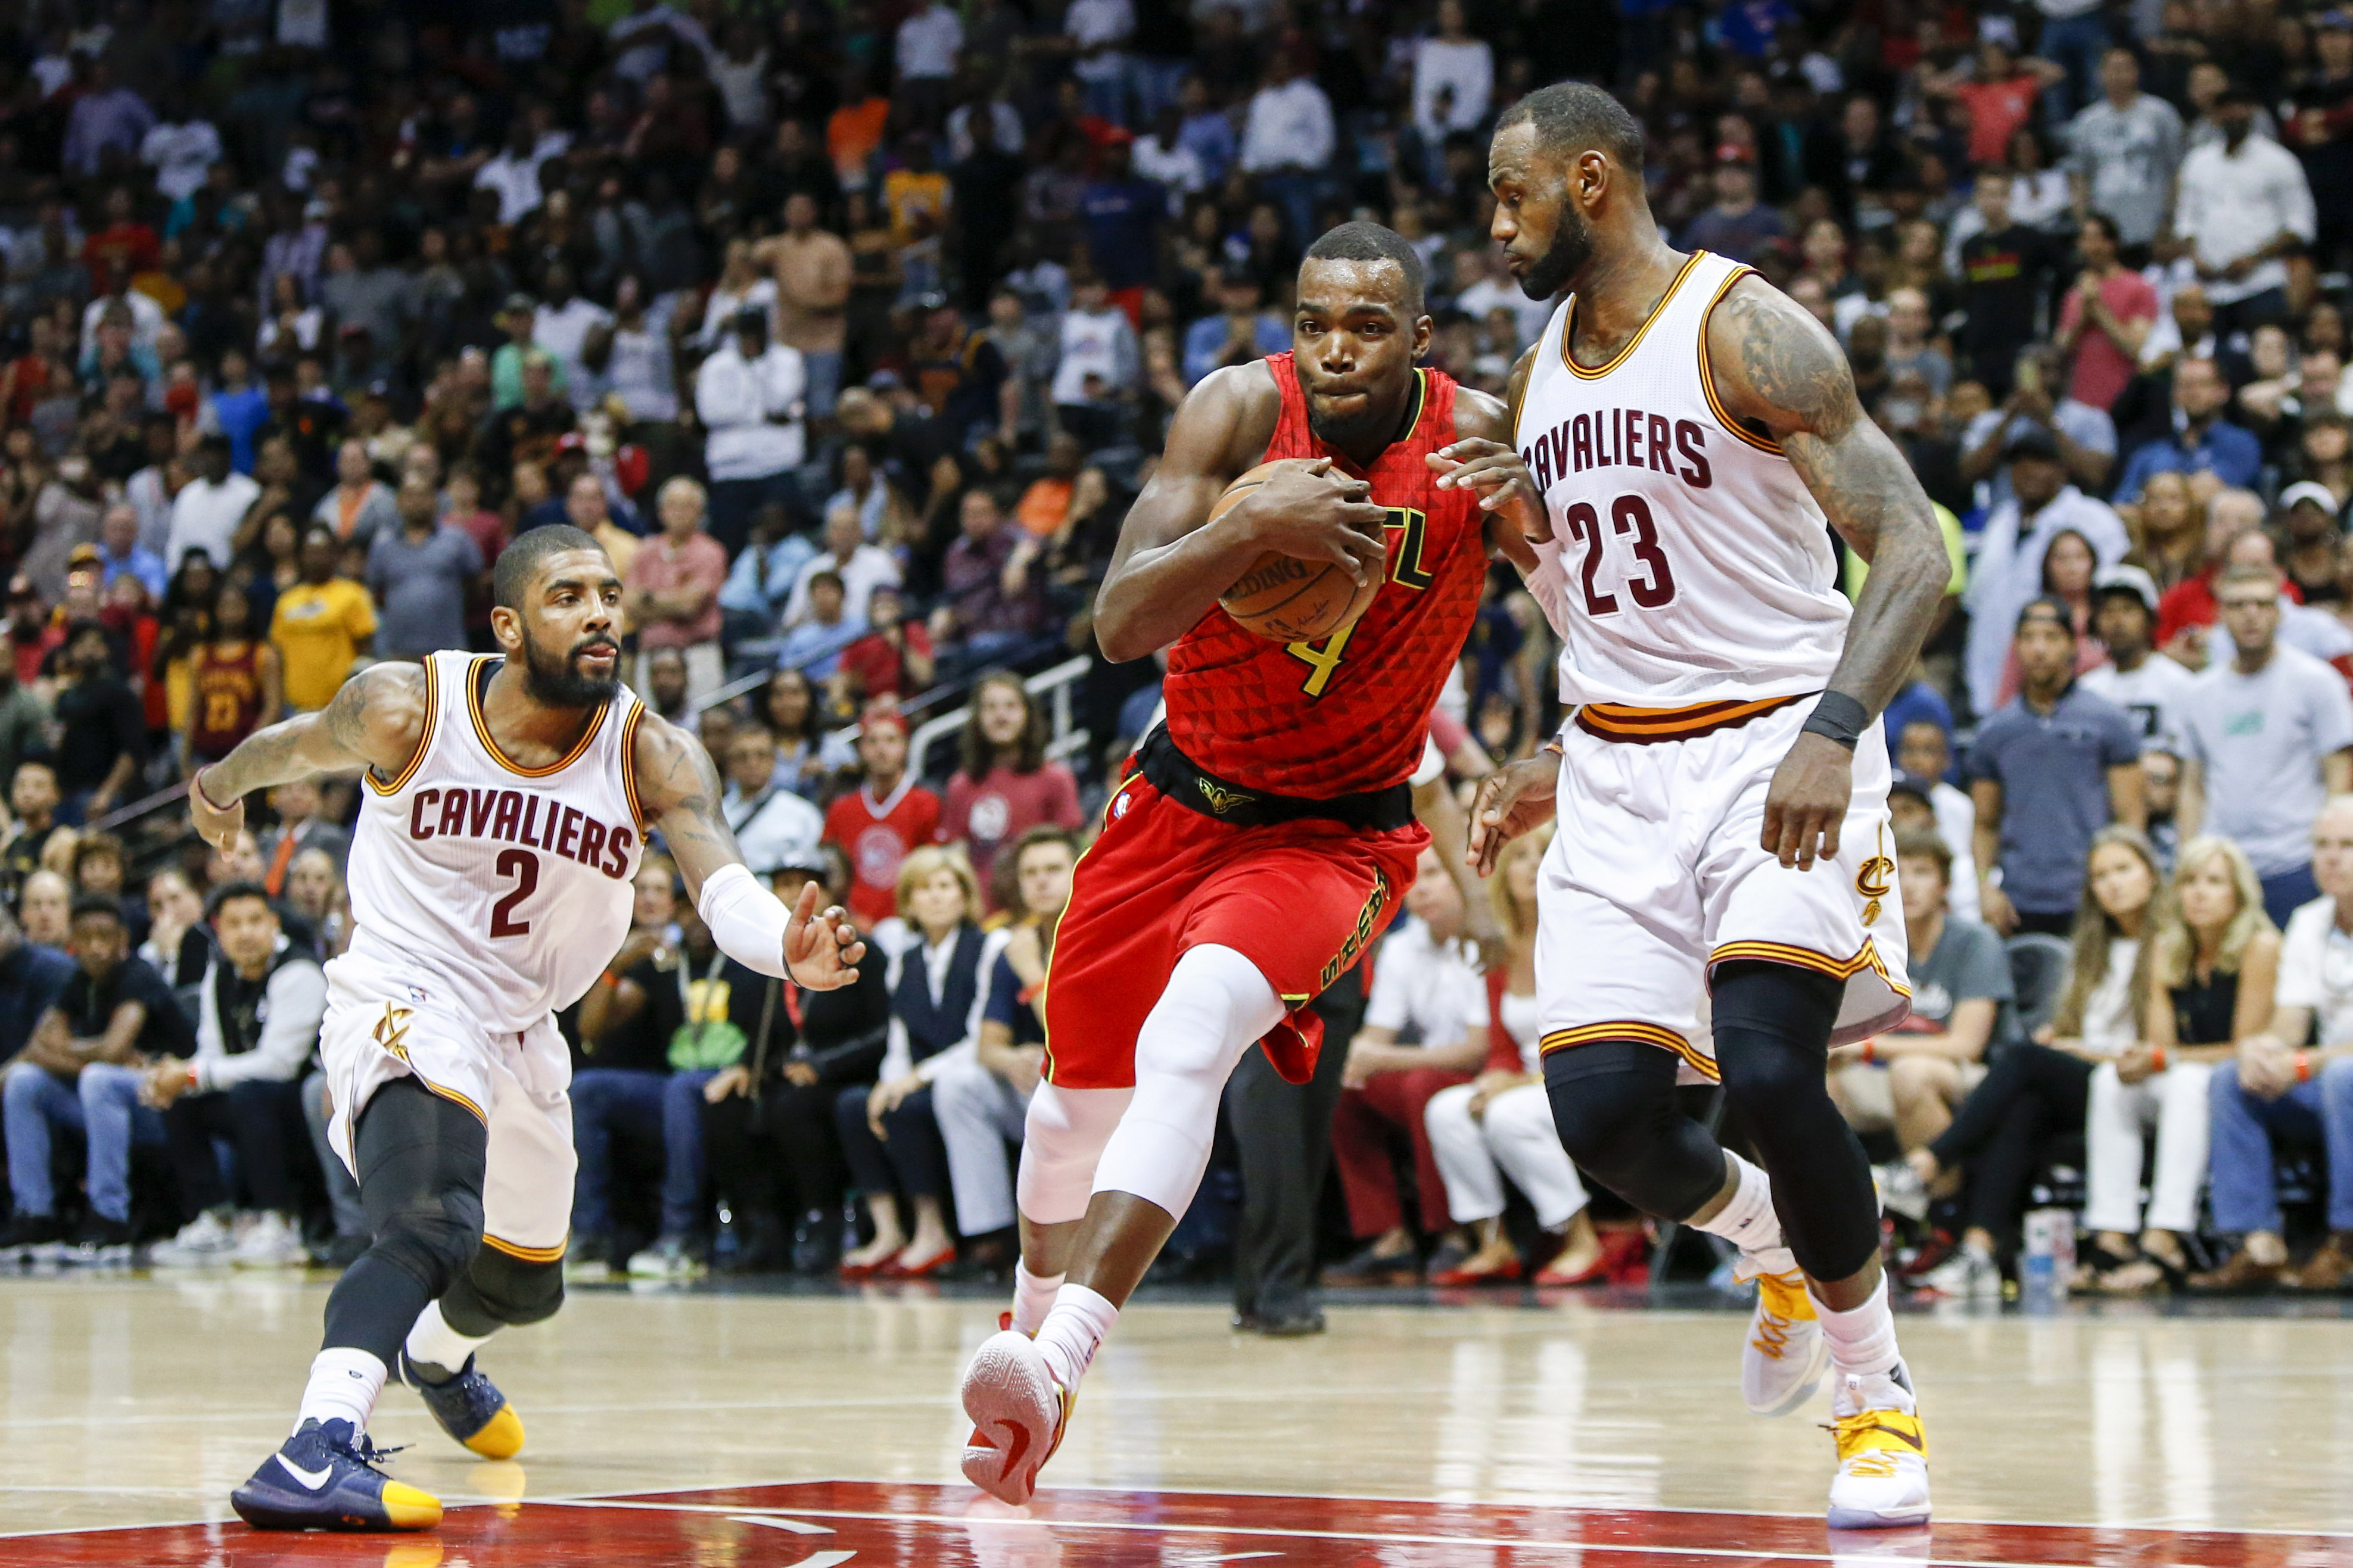 First test for Atlanta Hawks front office is retaining Paul Millsap